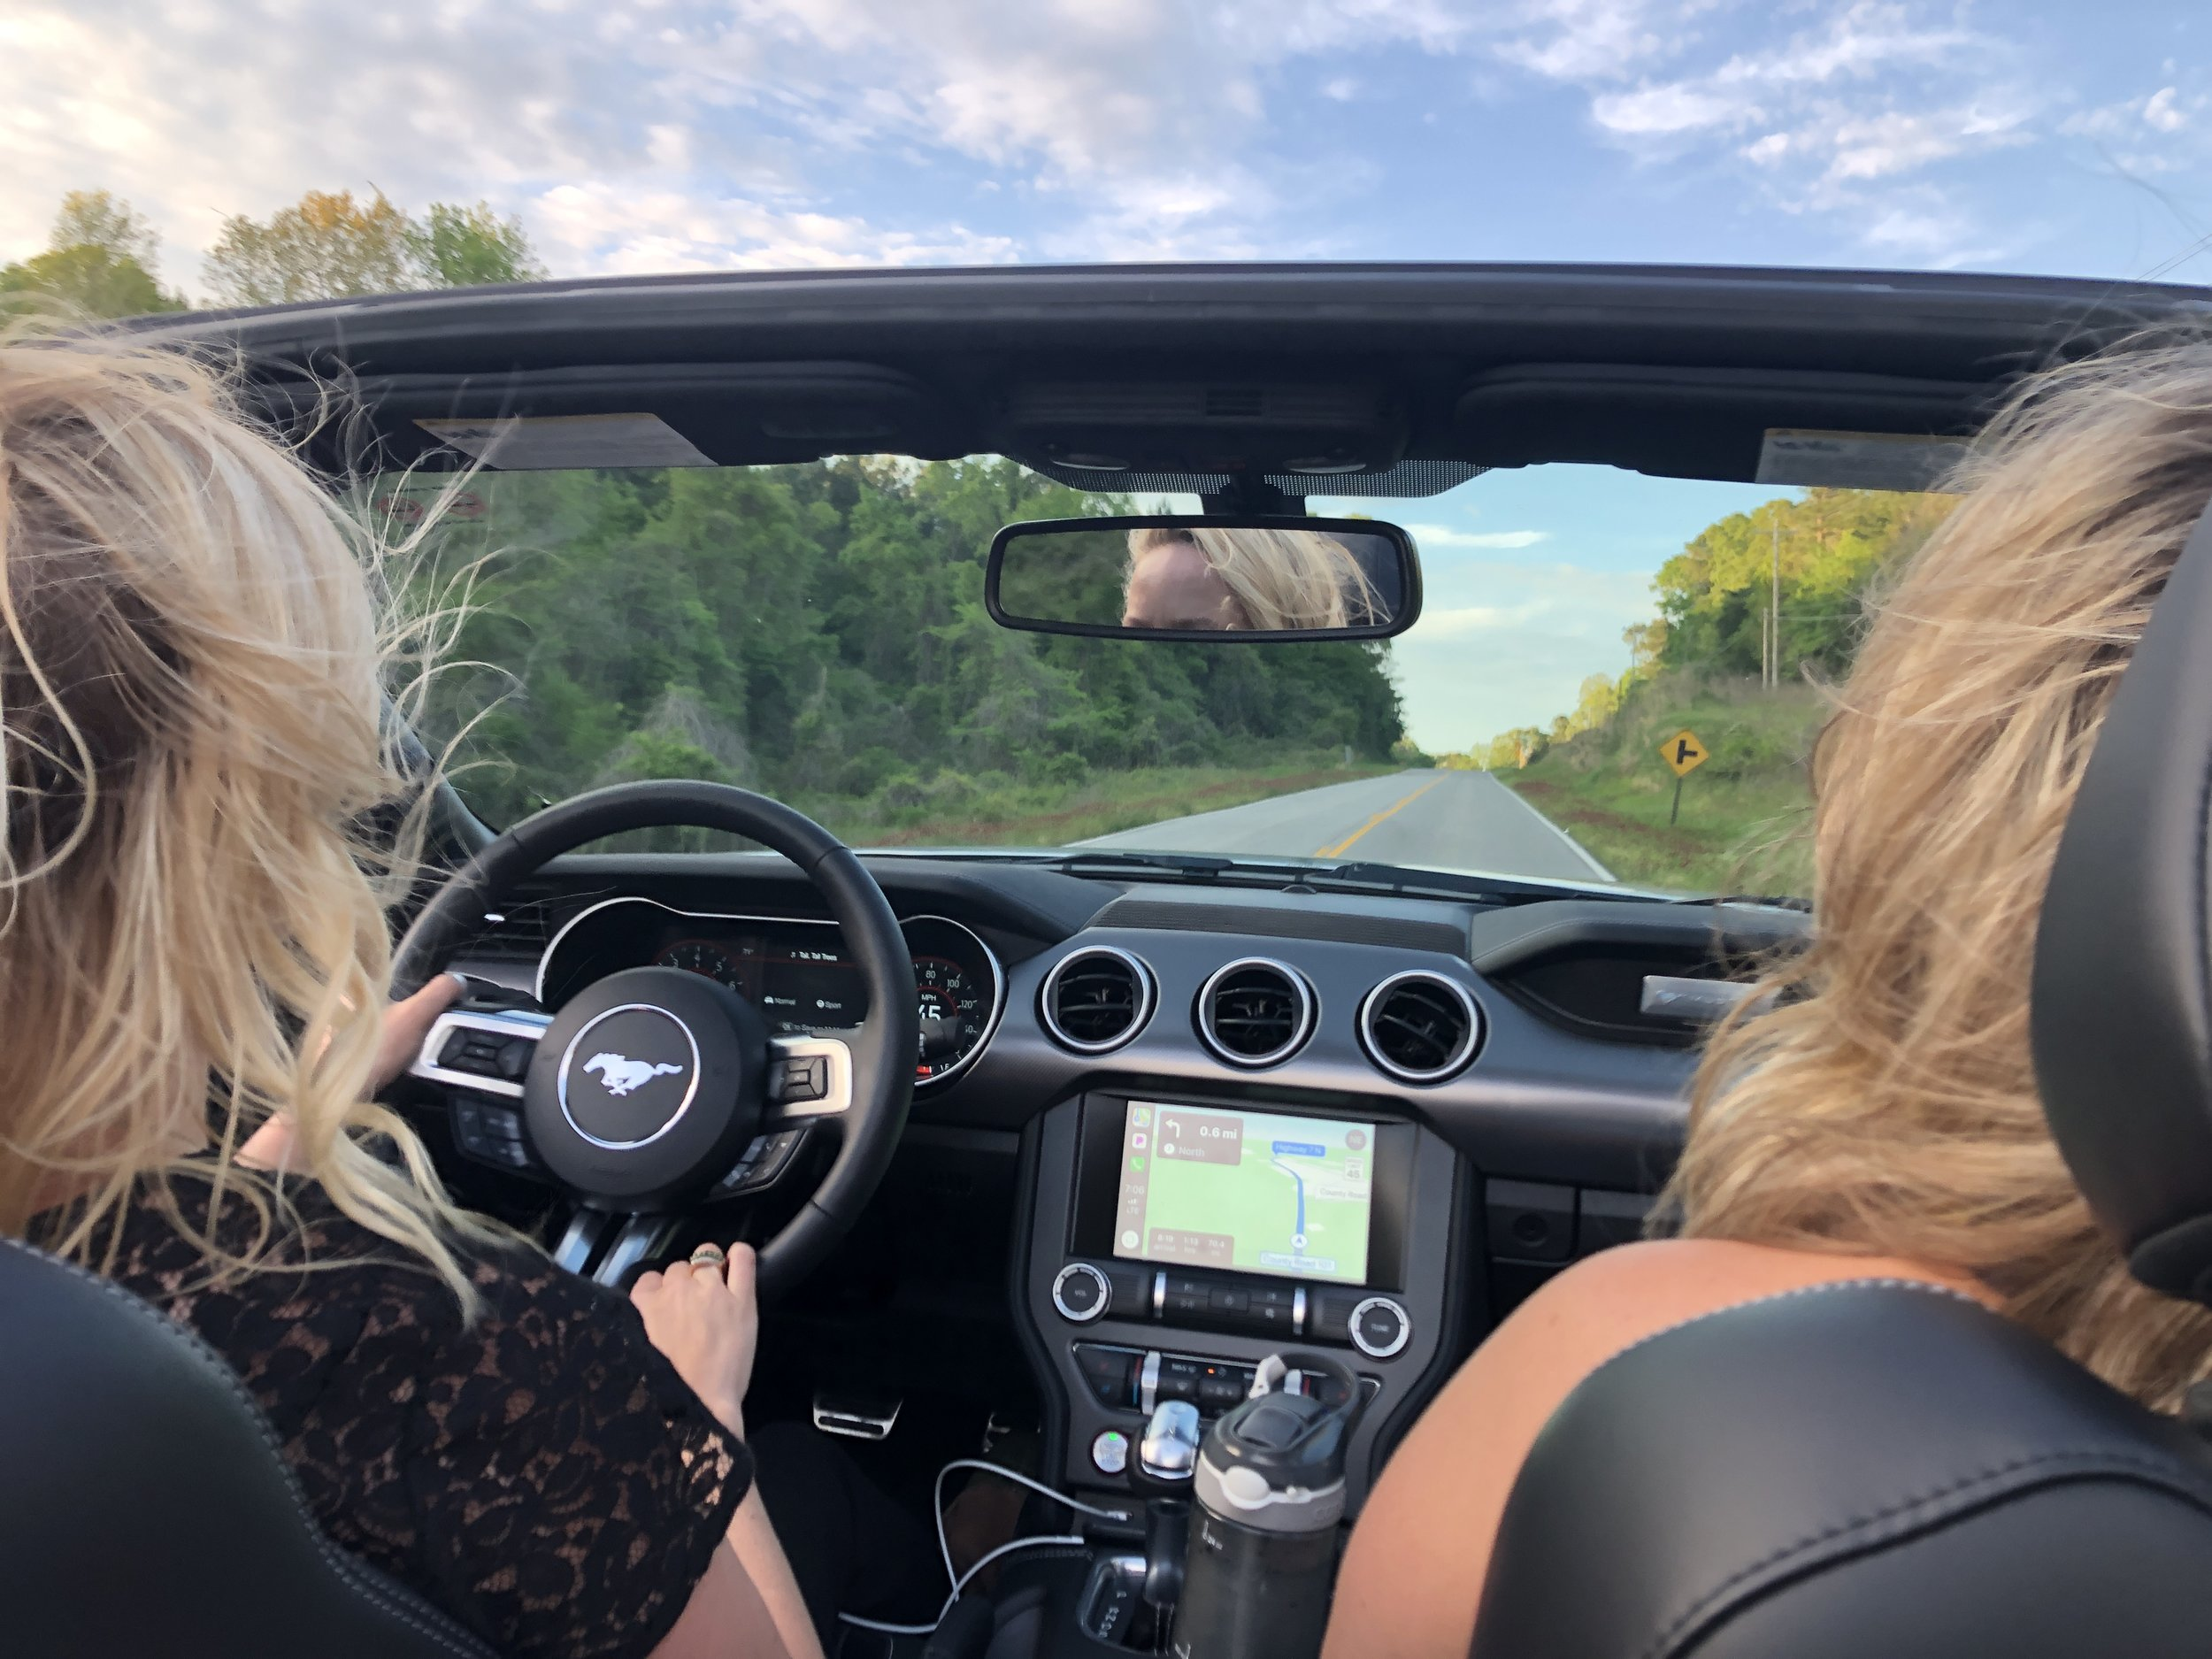 Driving on old country roads in our rental convertible!